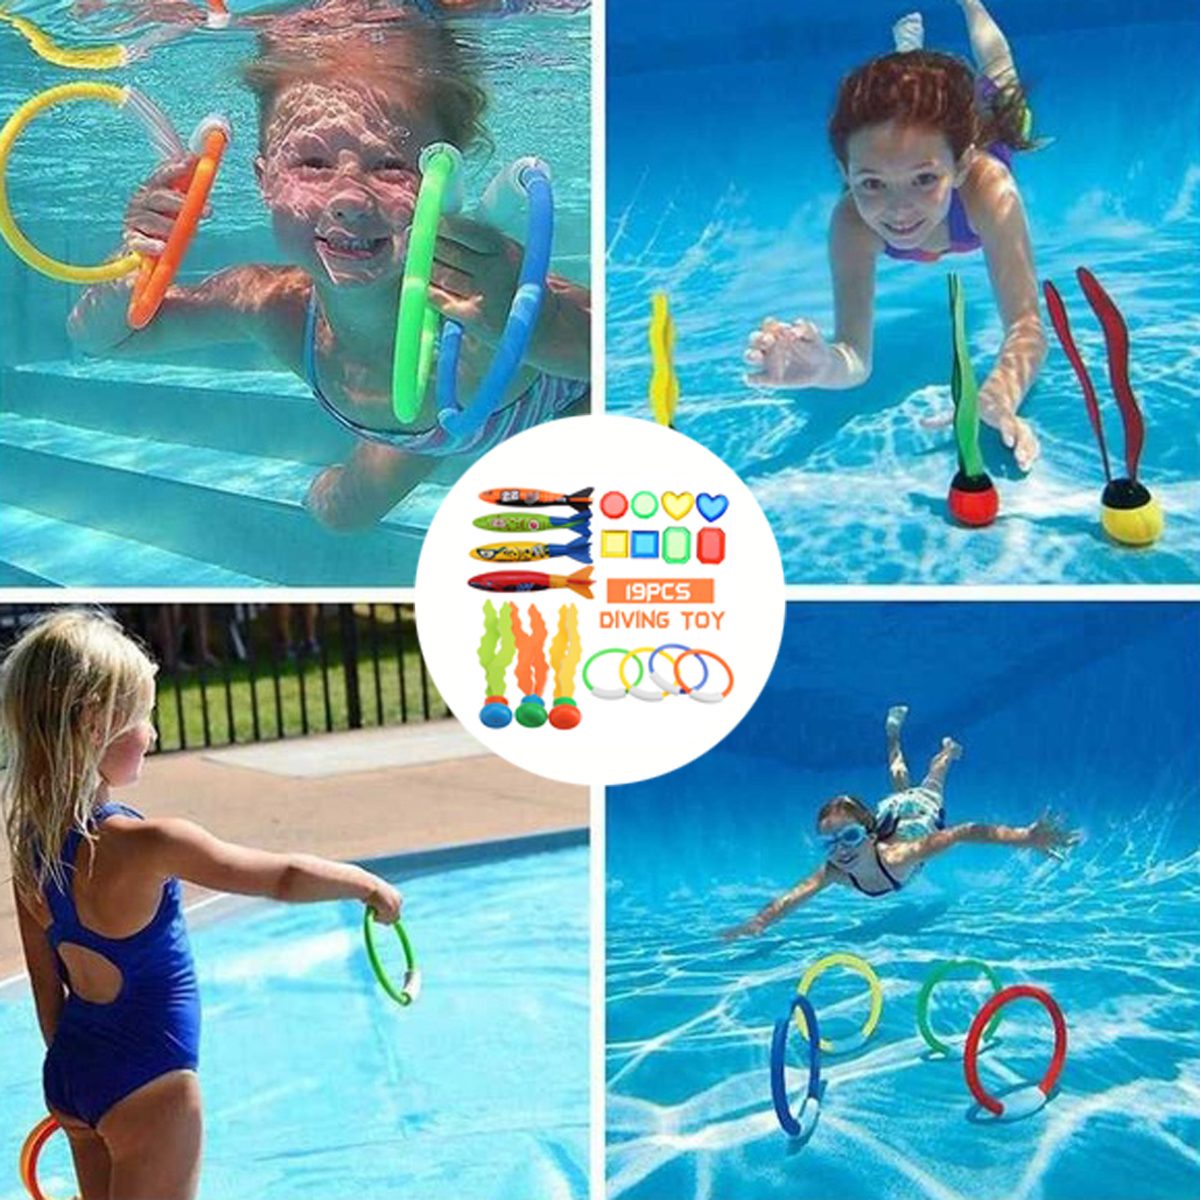 19PCS Swimming Pool Underwater Diving Toys Water Play Toys for Kids 12